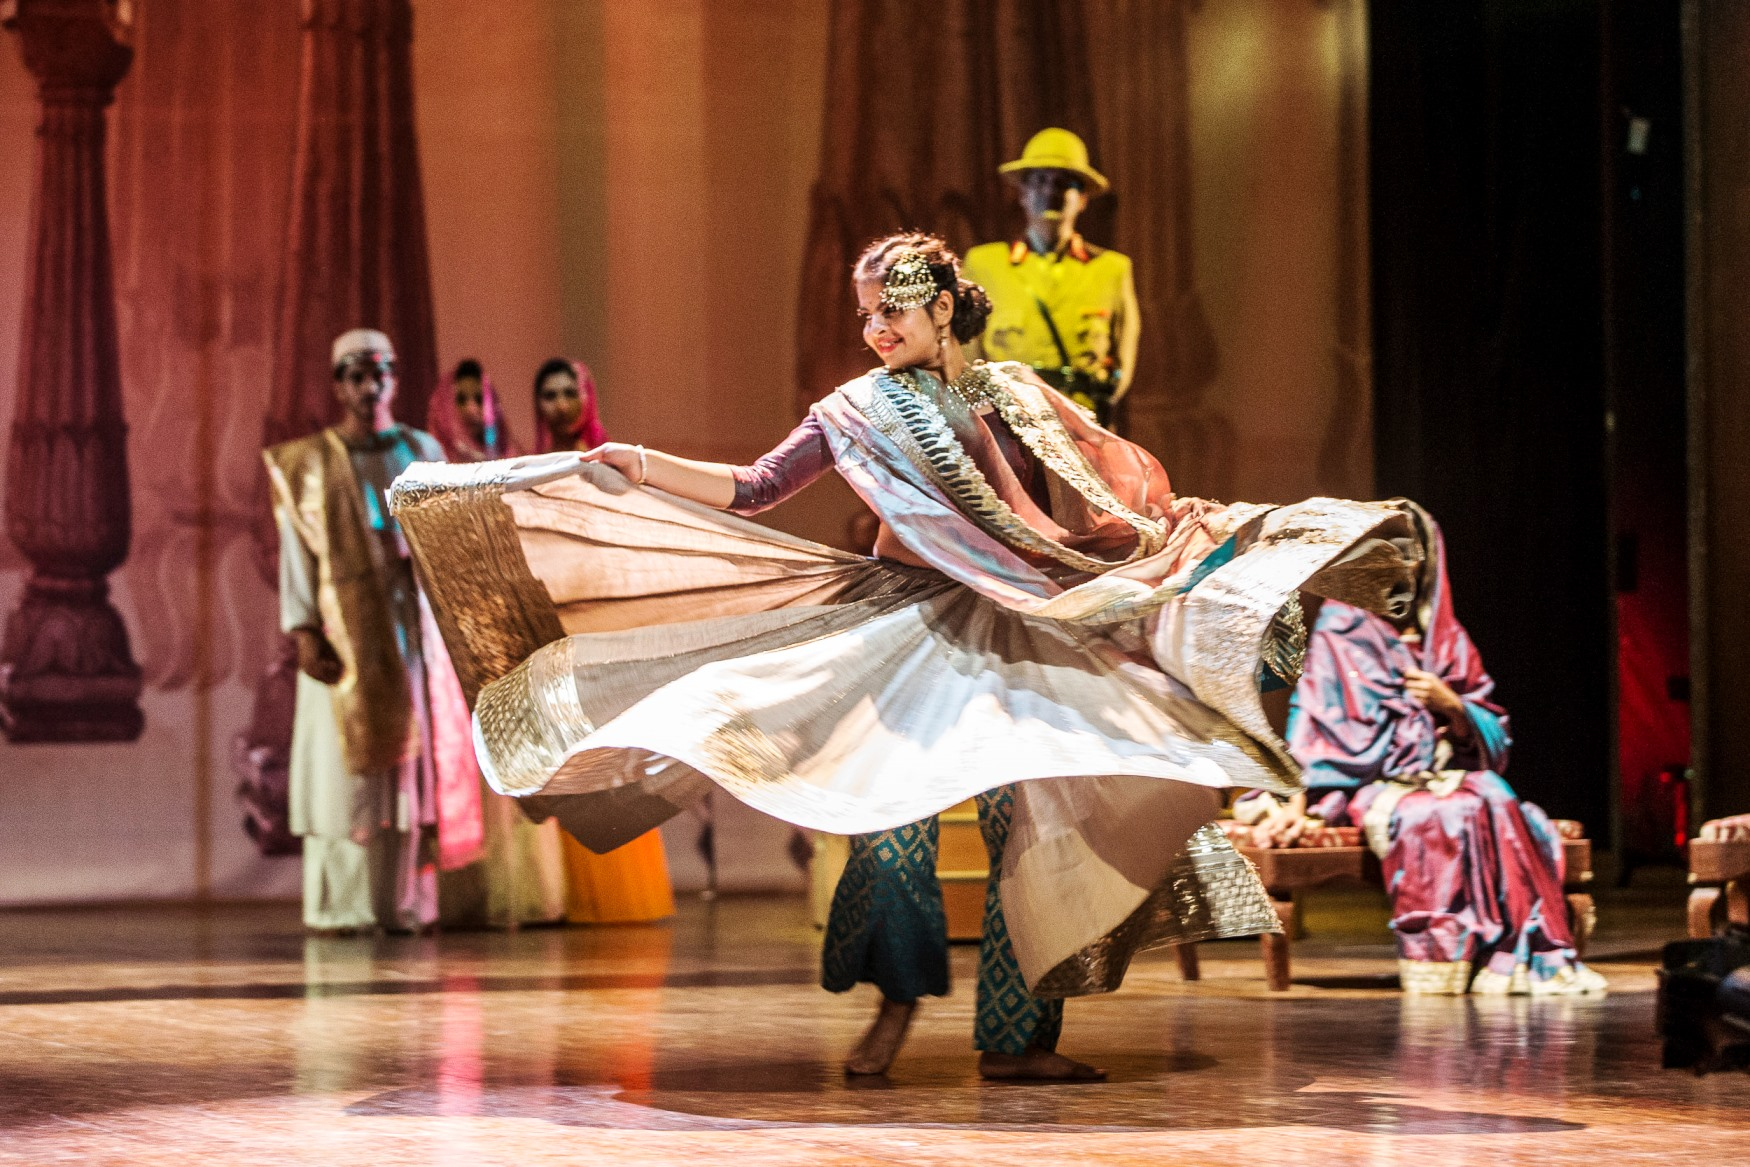 'Navras' Endeavours To Keep The Arts Alive With Vibrant Music, Dance And Theatre Performances At JKK